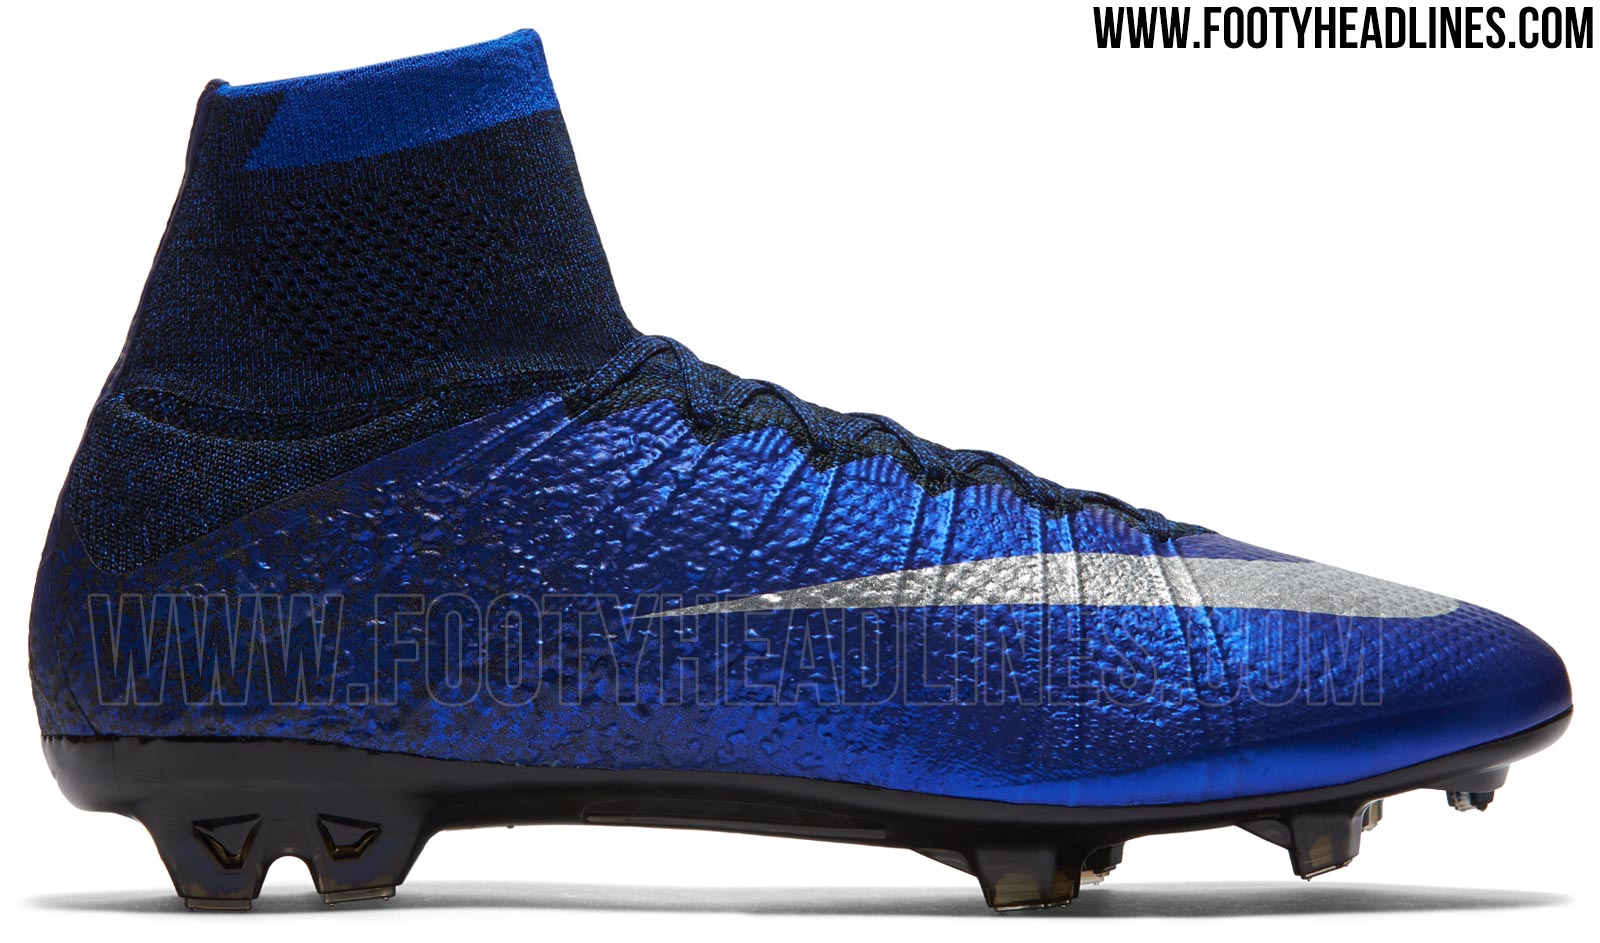 Cristiano Ronaldo Dark Blue Nike Shoes